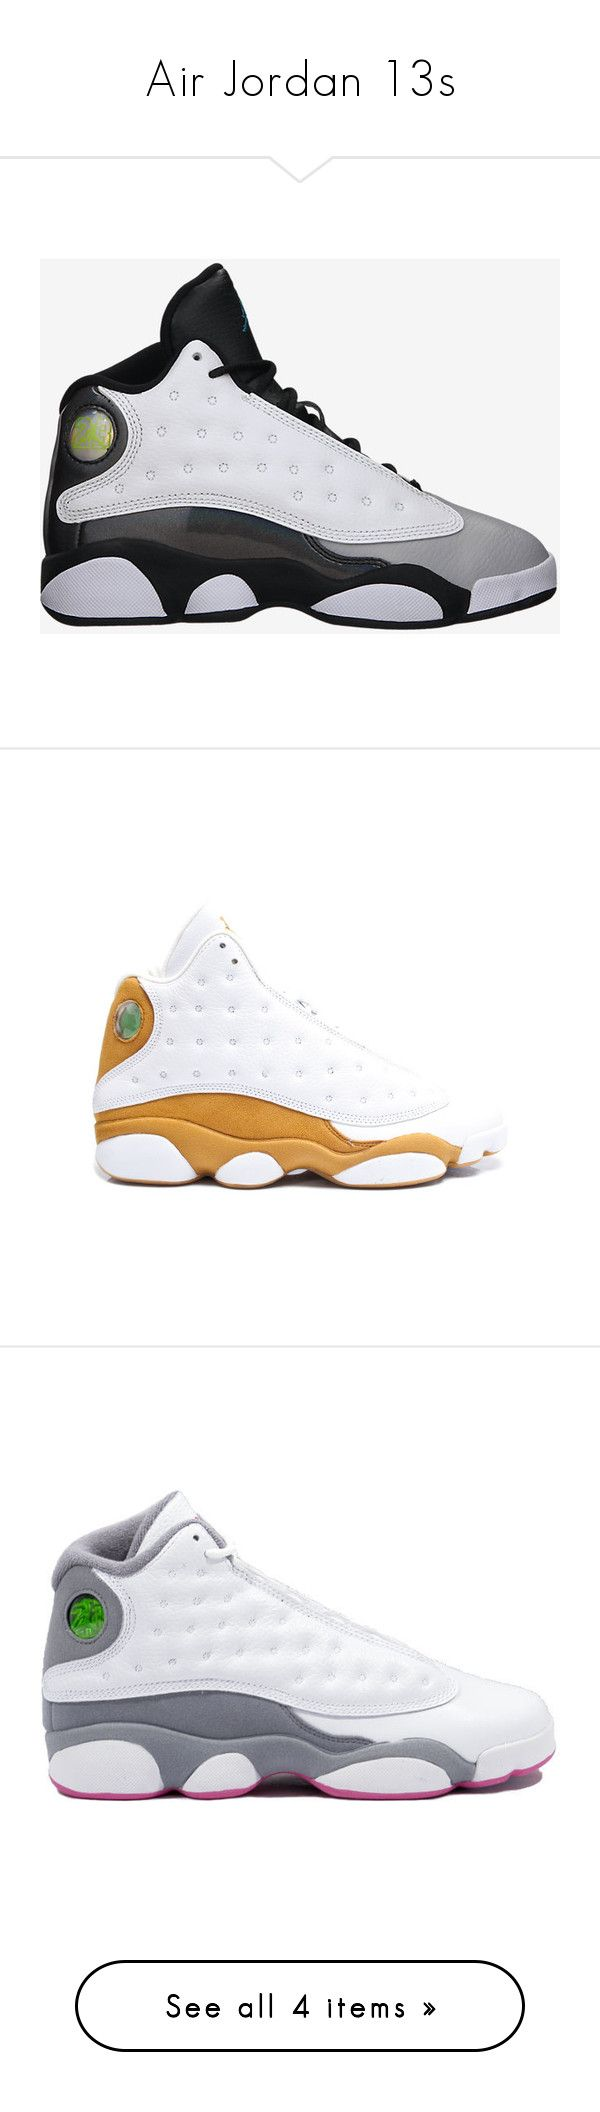 """""""Air Jordan 13s"""" by typical-dresser ❤ liked on Polyvore featuring shoes, jordans, sneakers, jordan 13, shoes // socks, white leather sneakers, leather trainers, white leather trainers, retro shoes and genuine leather shoes"""